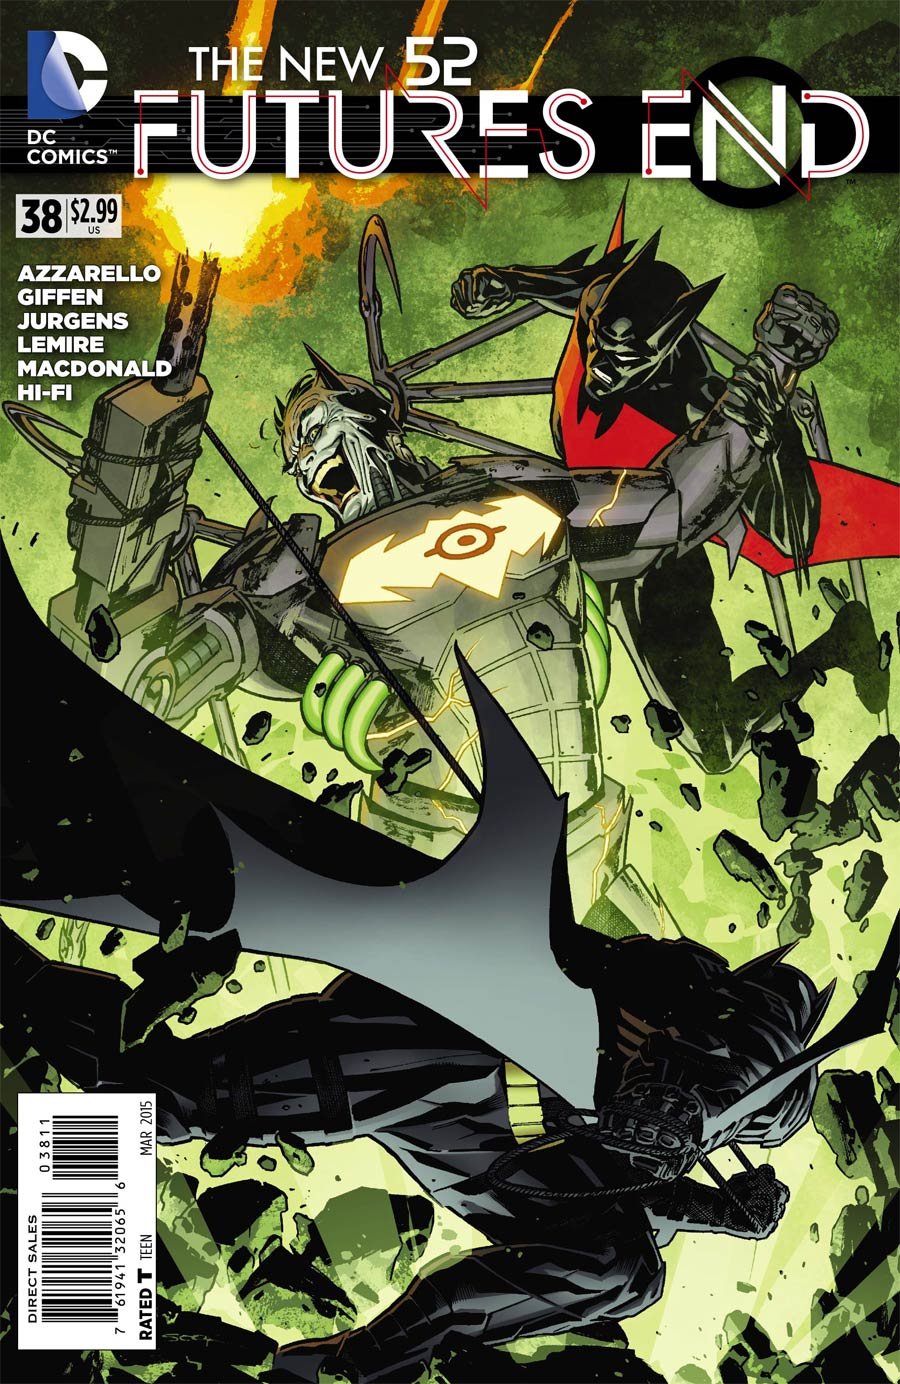 New 52 Futures End #38